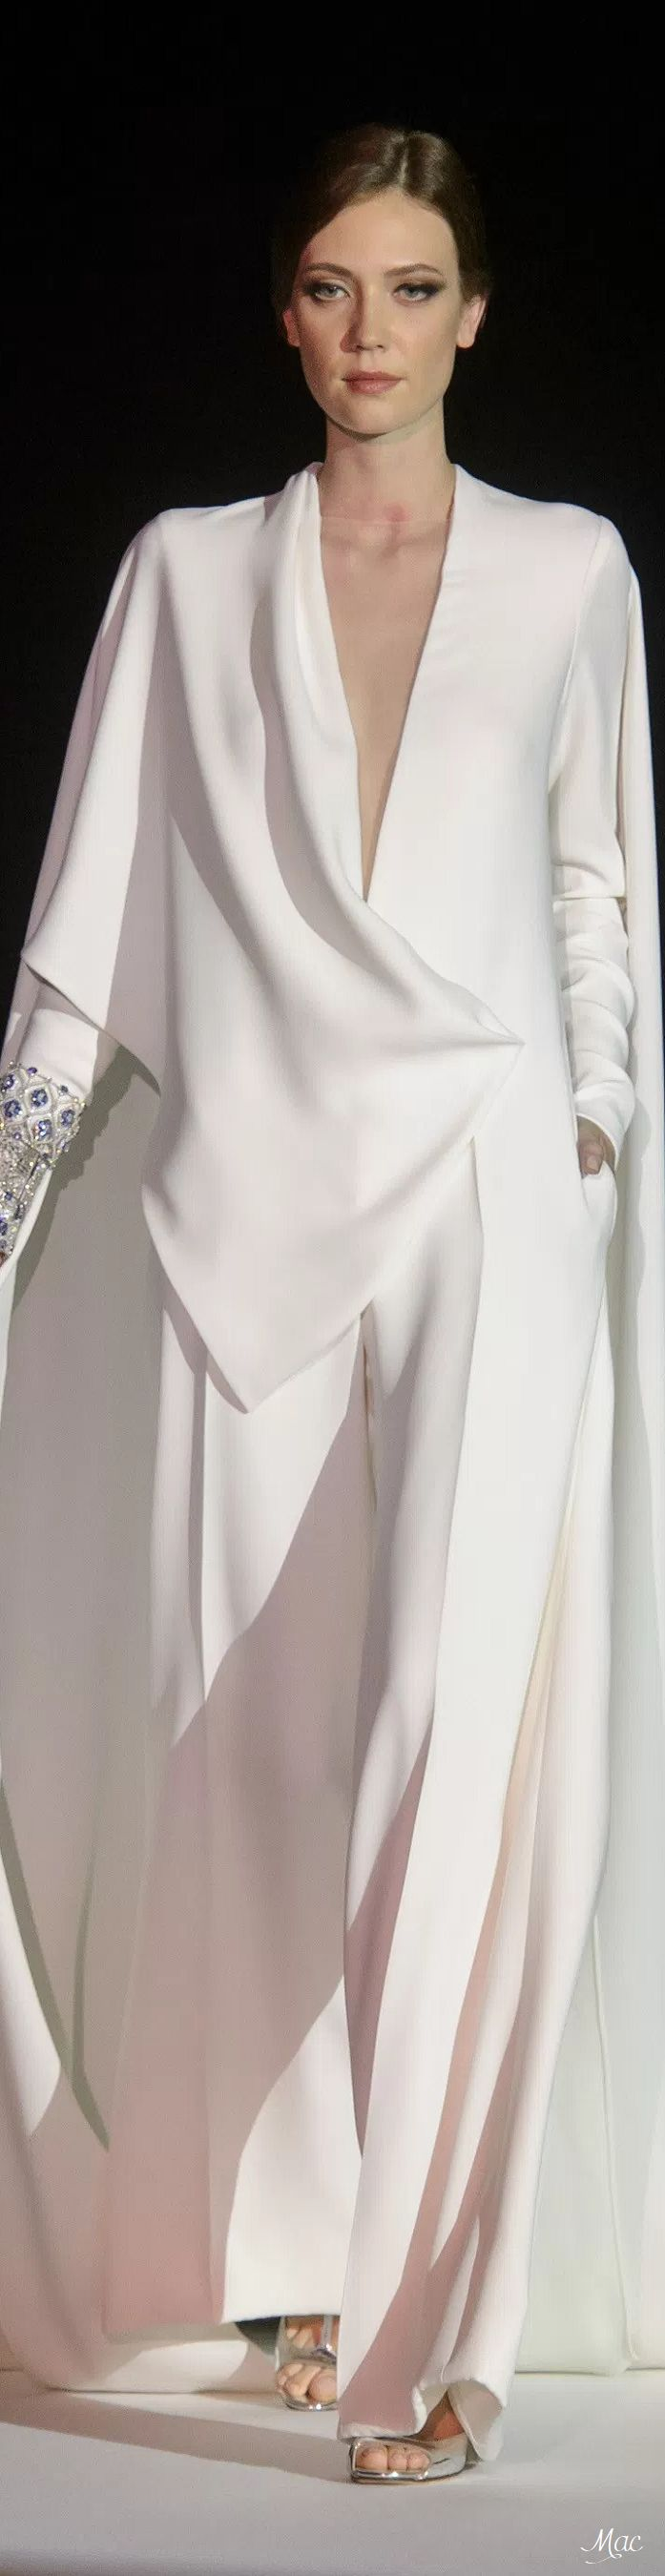 Spring 2018 Haute Couture Stéphane Rolland